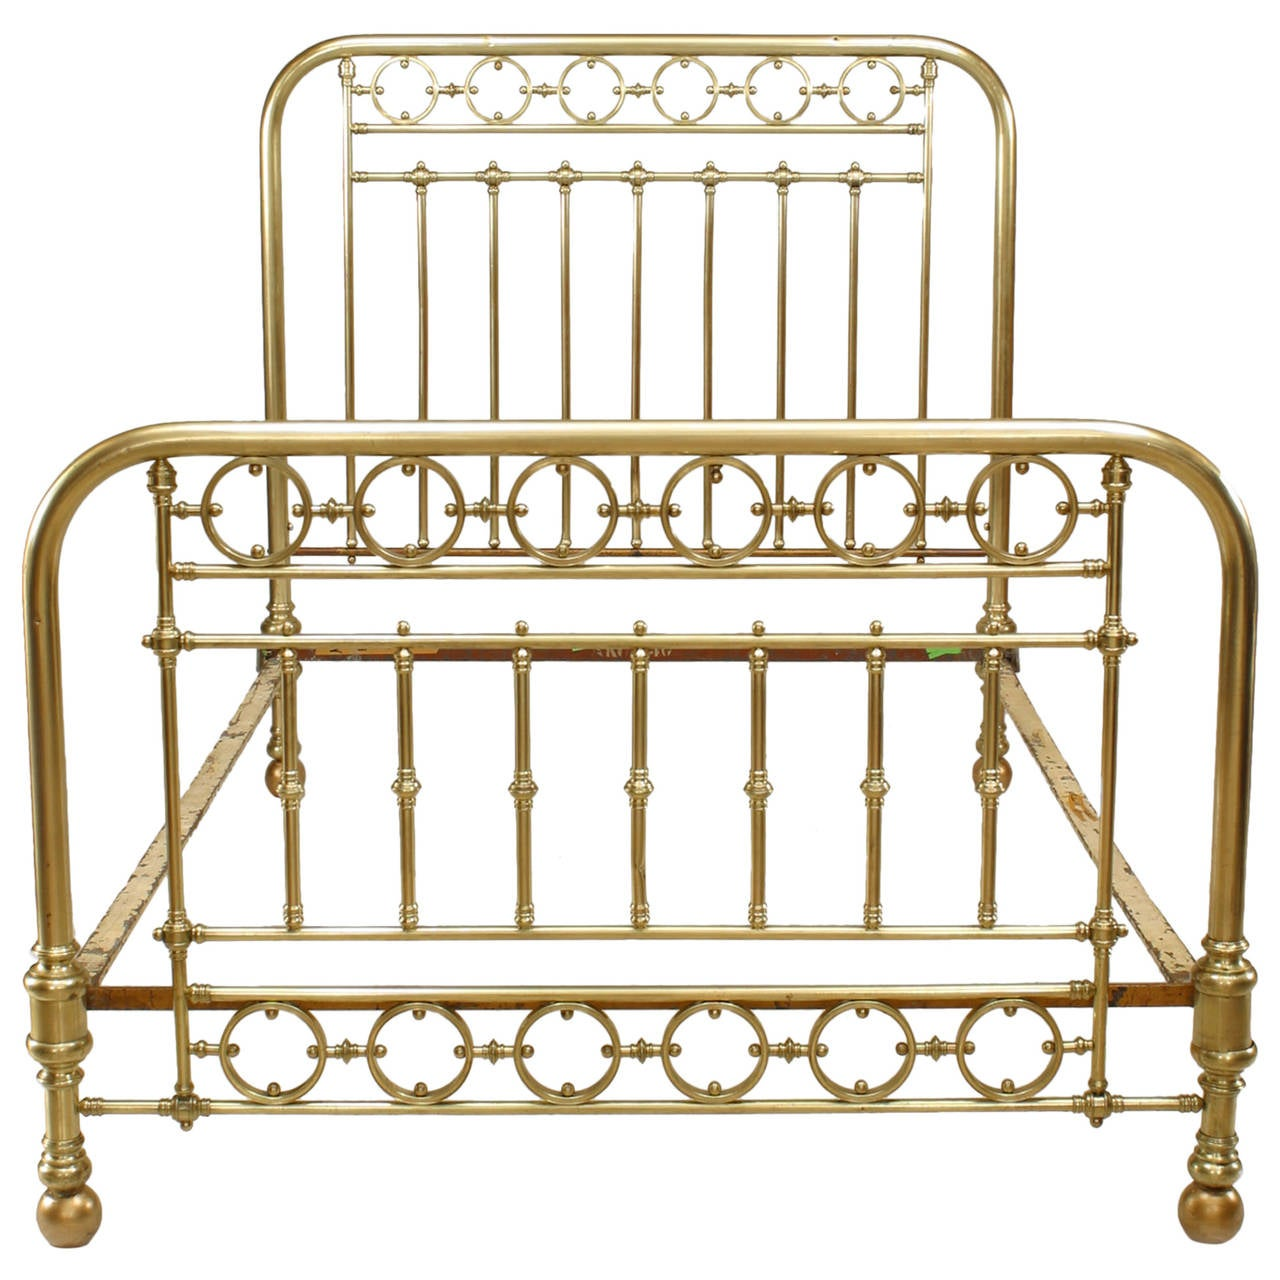 19th c american brass full sized spindle bed at 1stdibs for American furniture bed frames